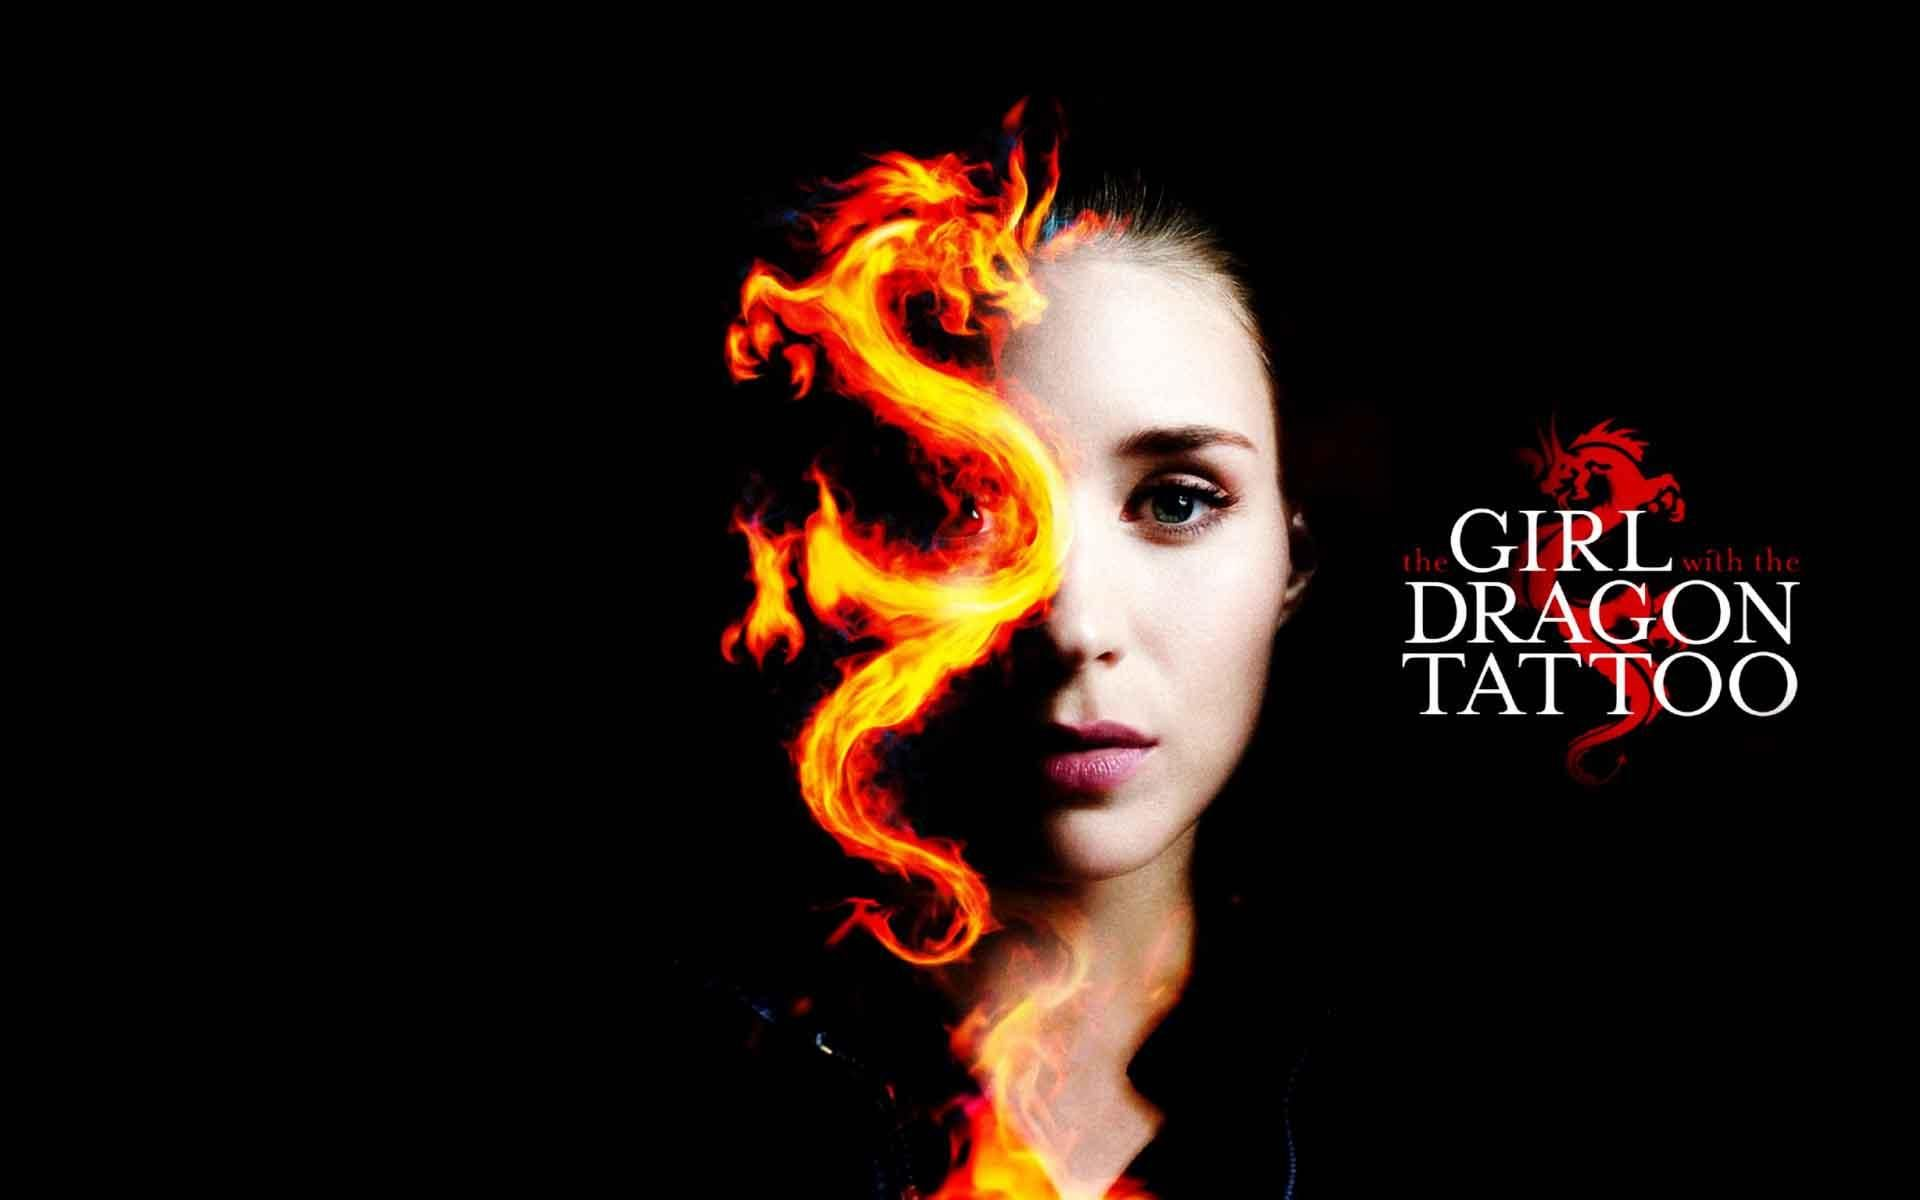 Dragon lore wallpaper wallpapersafari - The Girl With The Dragon Tattoo Wallpaper Hd Wallpapers Available In Different Resolution And Sizes